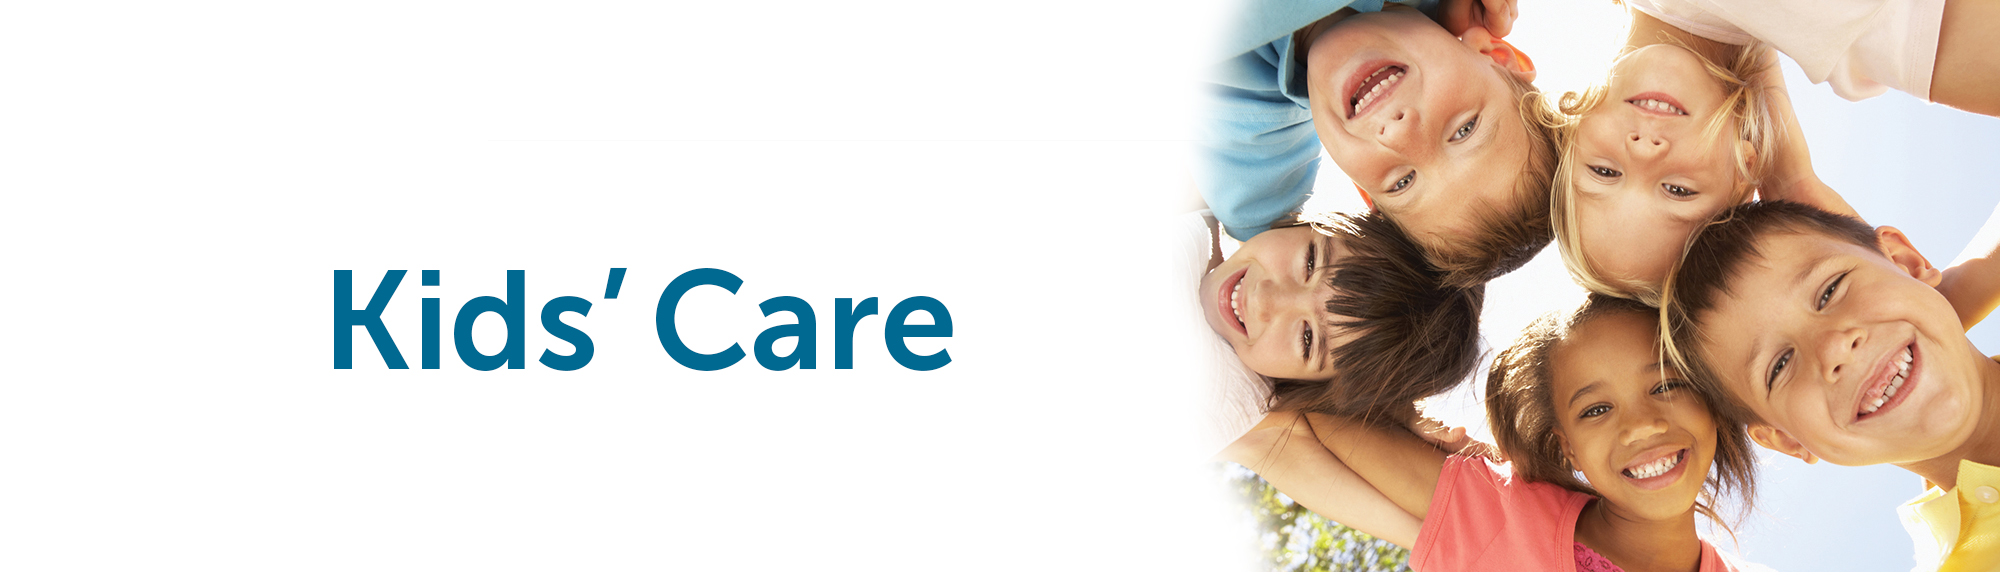 Kids Care Banner